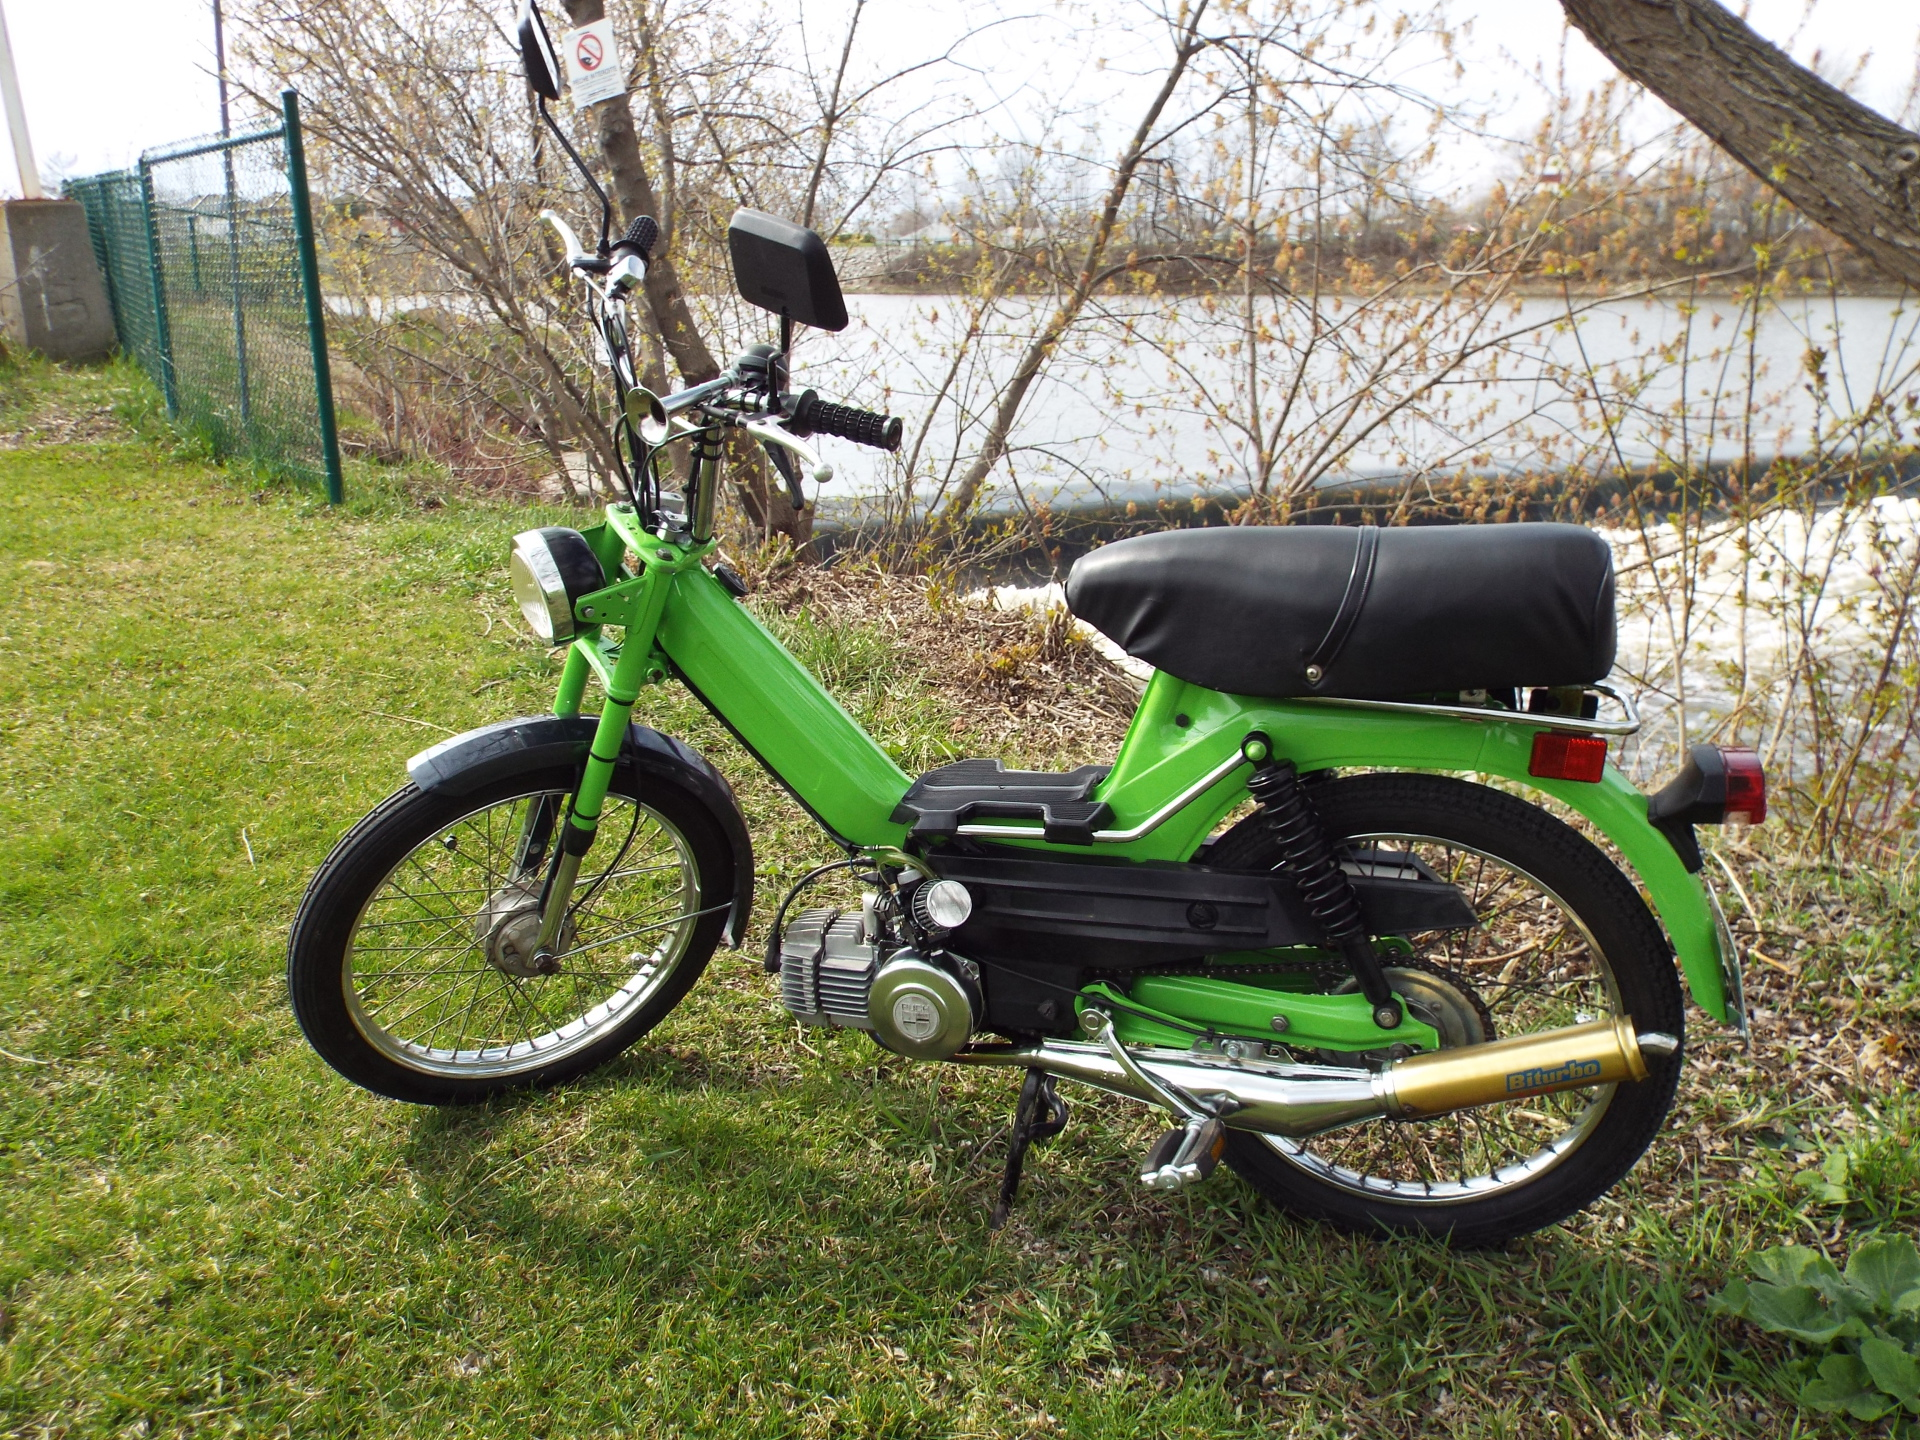 1976 Bombardier (Puch) Maxi